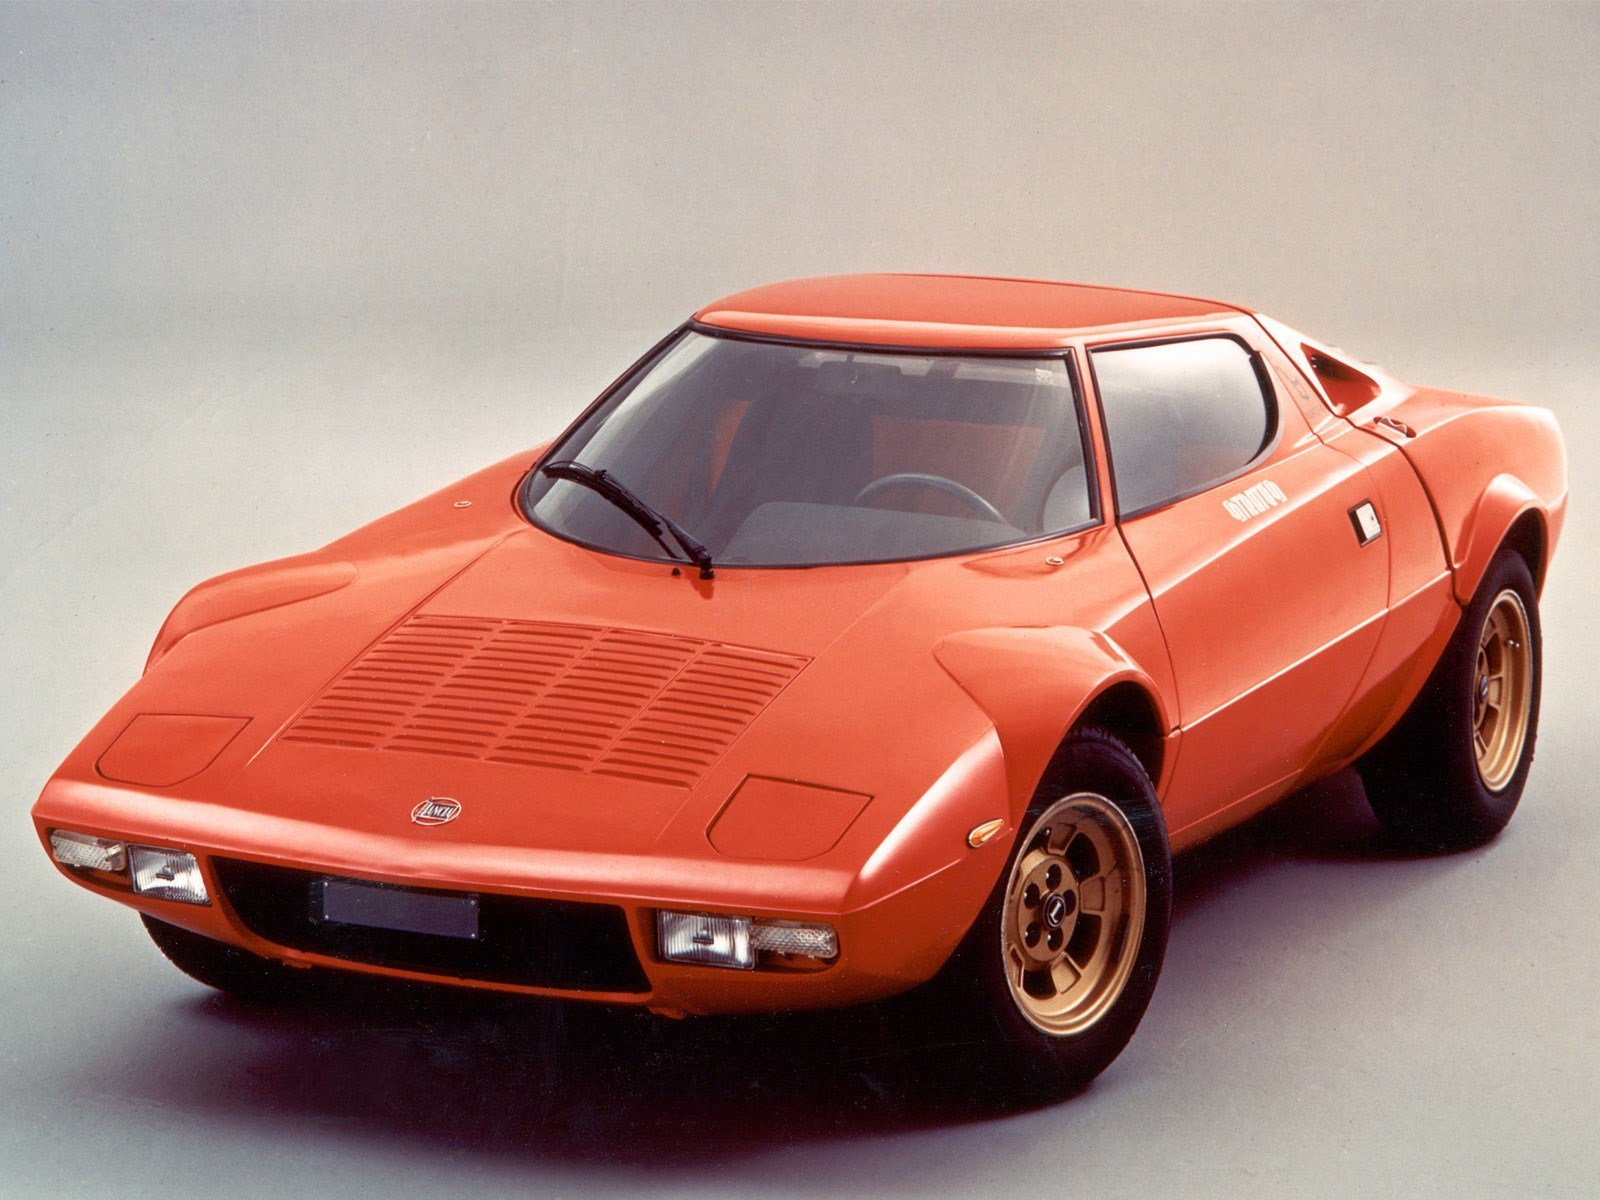 New 1974 Lancia Stratos Classic Automobiles On This Month